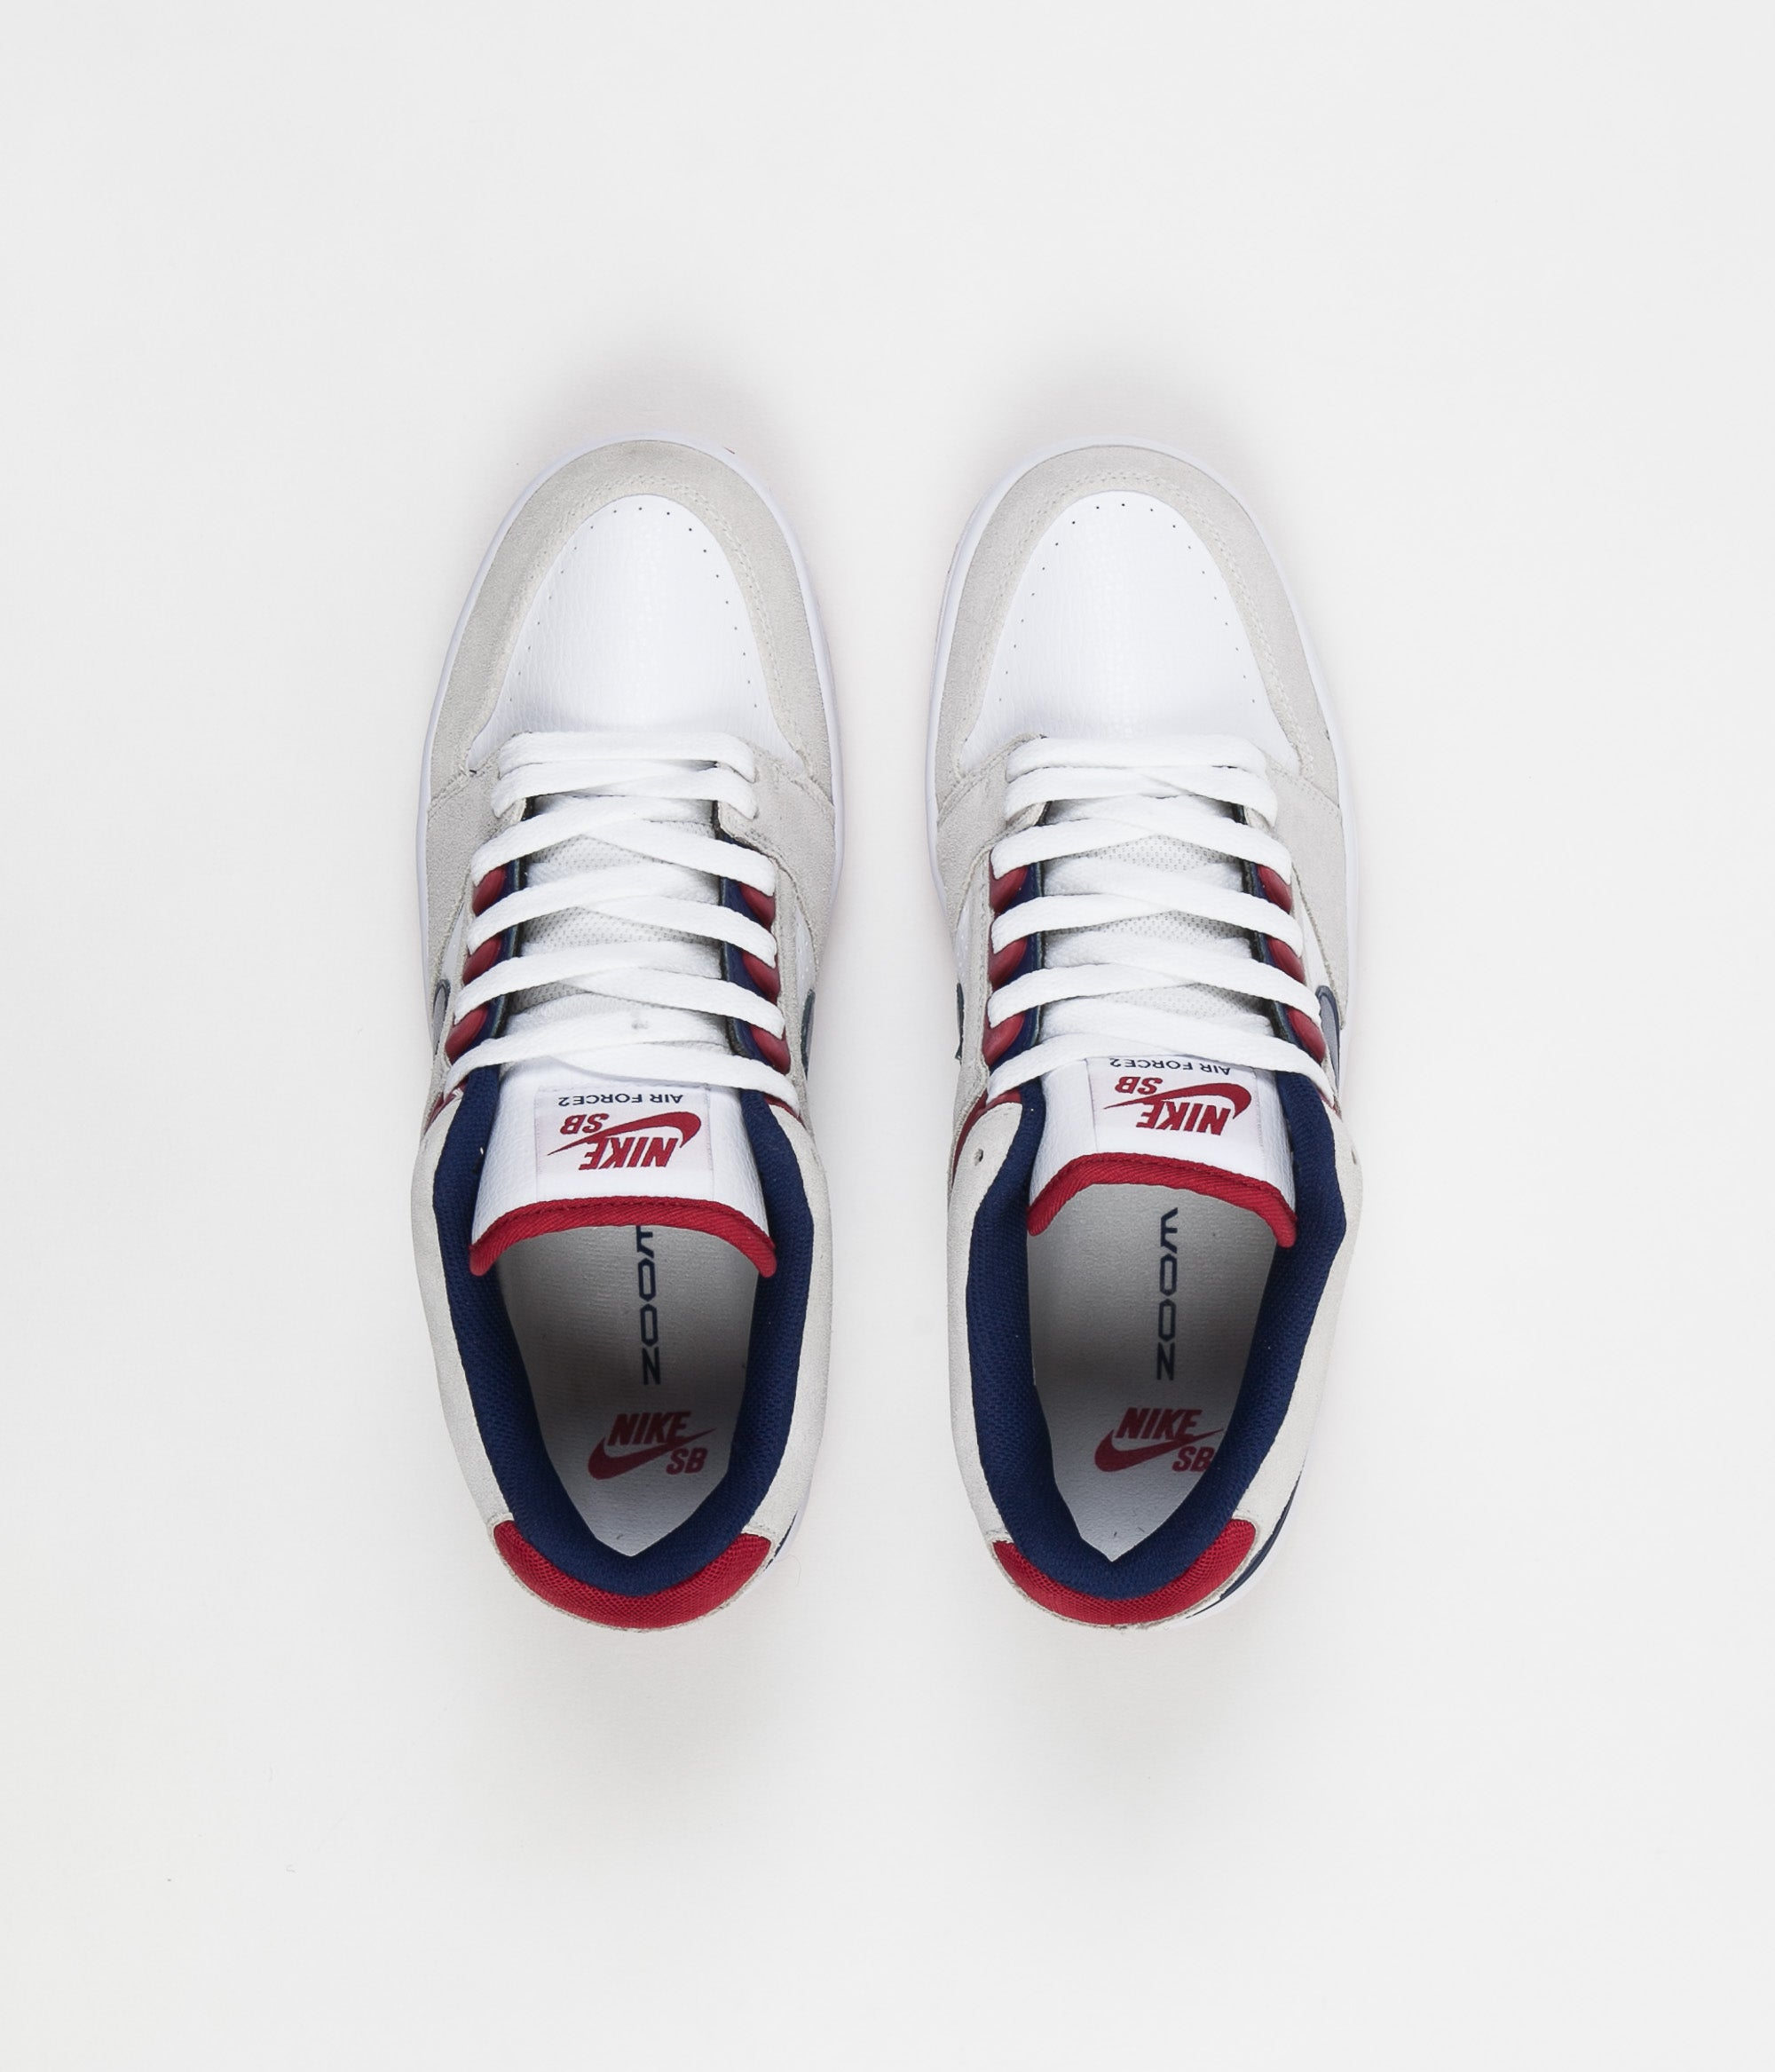 outlet store 411f9 bc4c4 Nike SB Air Force II Low Shoes - White   Blue Void - Red Crush ...